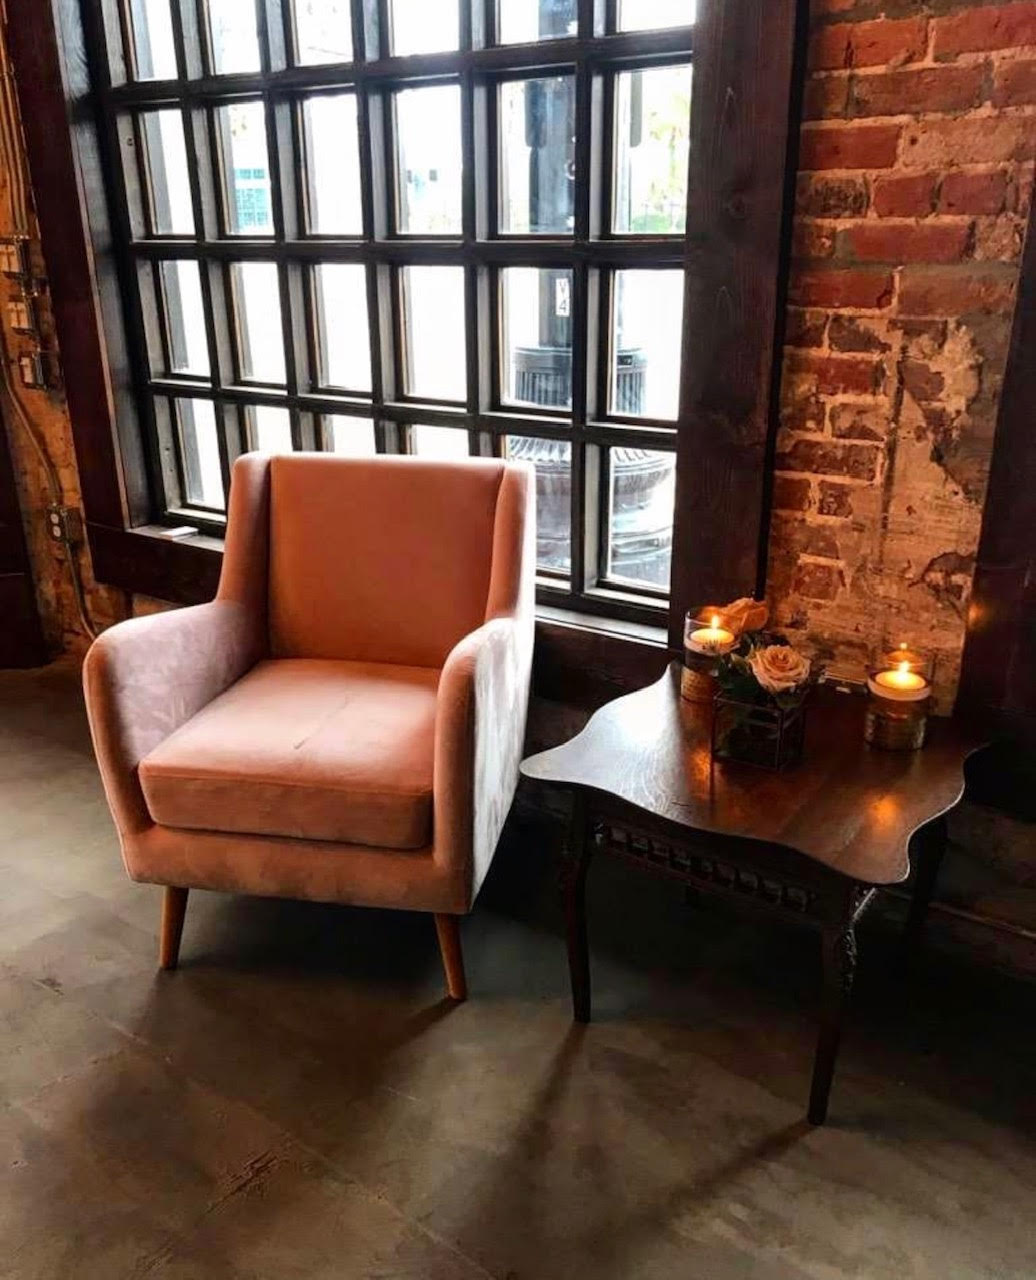 Pretty chair by windows and a table